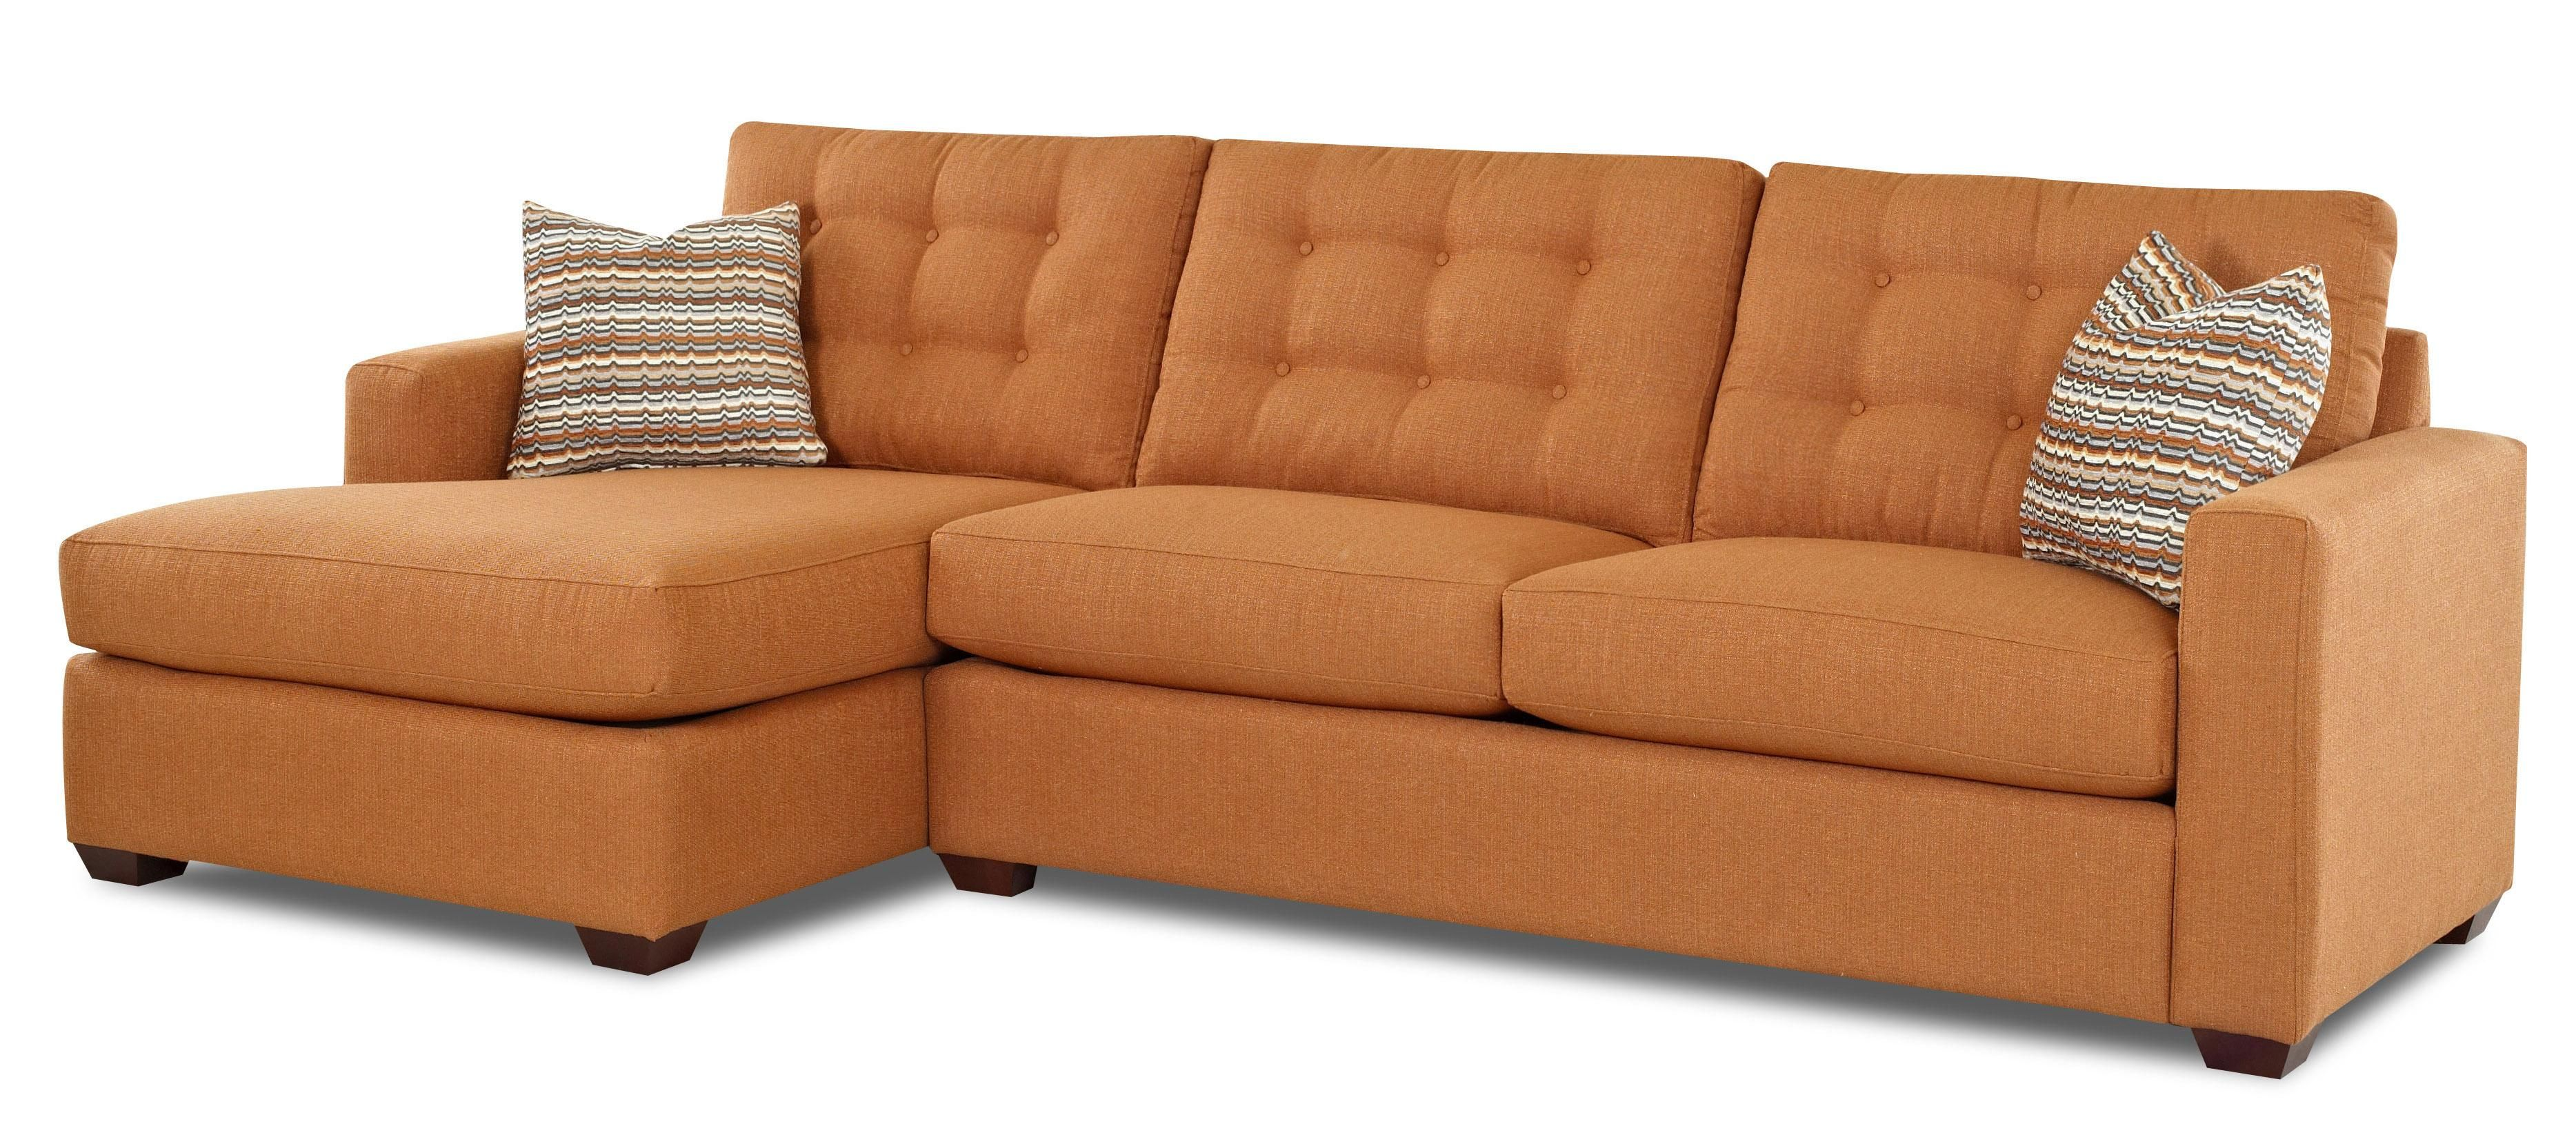 Lido Casual Sectional Sofa with Chaise Lounge by Klaussner - Wolf ...